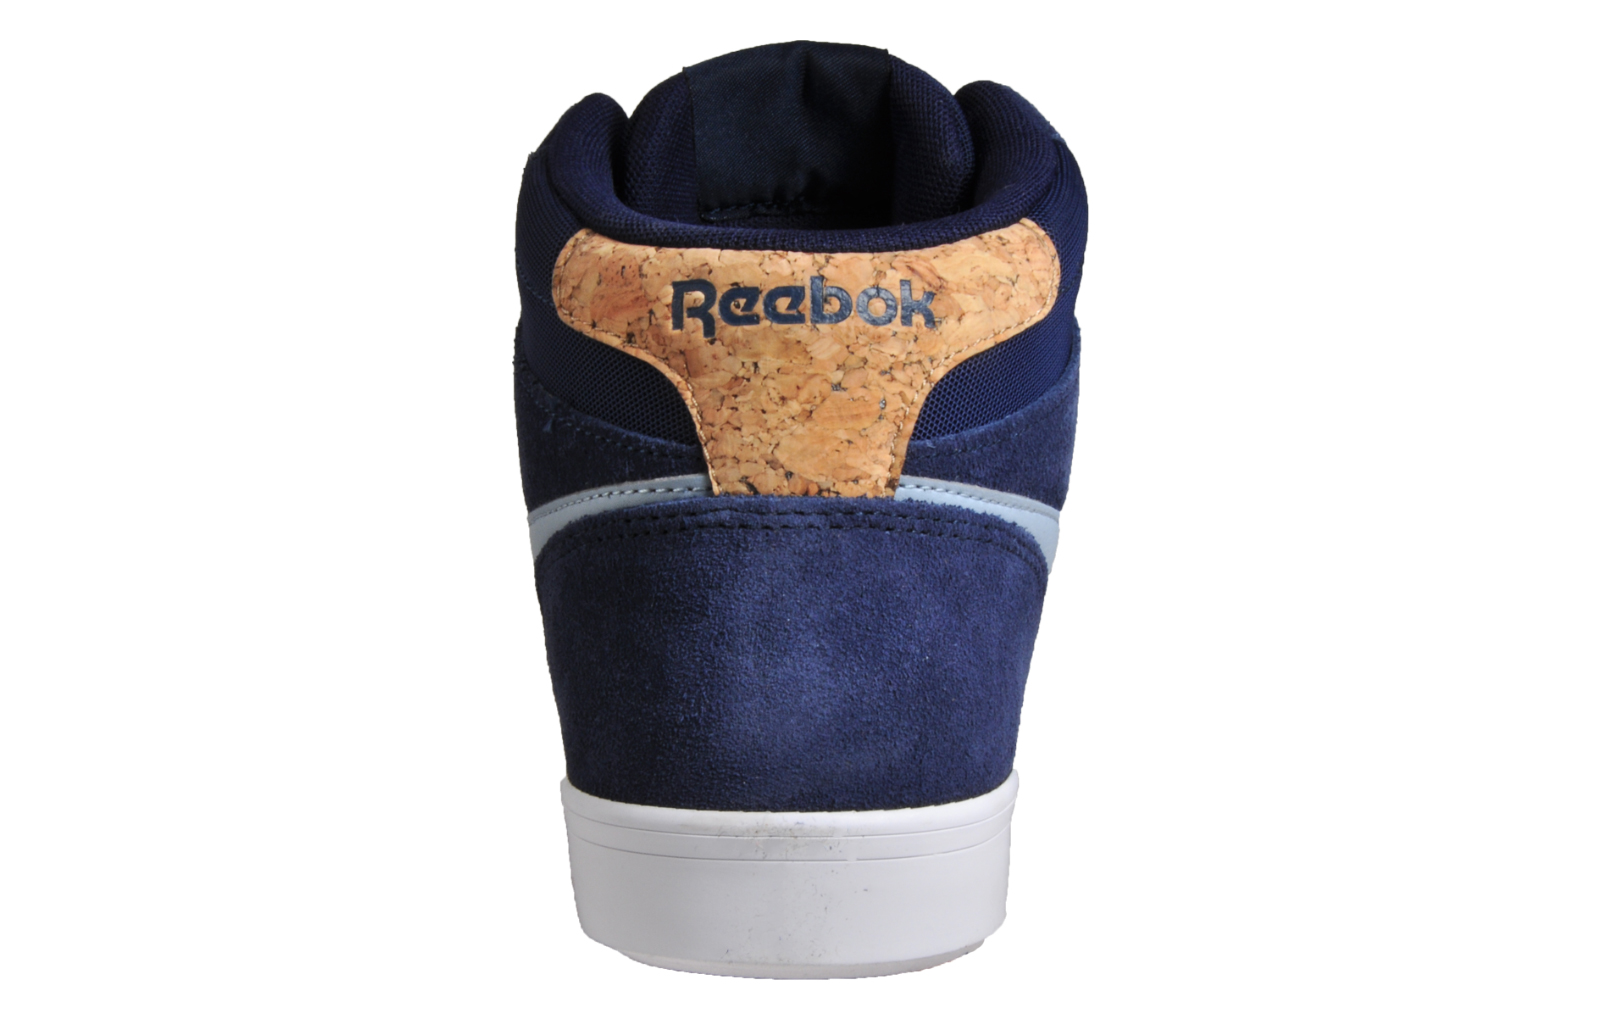 c28e8720be5 Reebok Royal Complete 2MS Classic Men s Causal Fashion Retro Mid Trainers  Navy